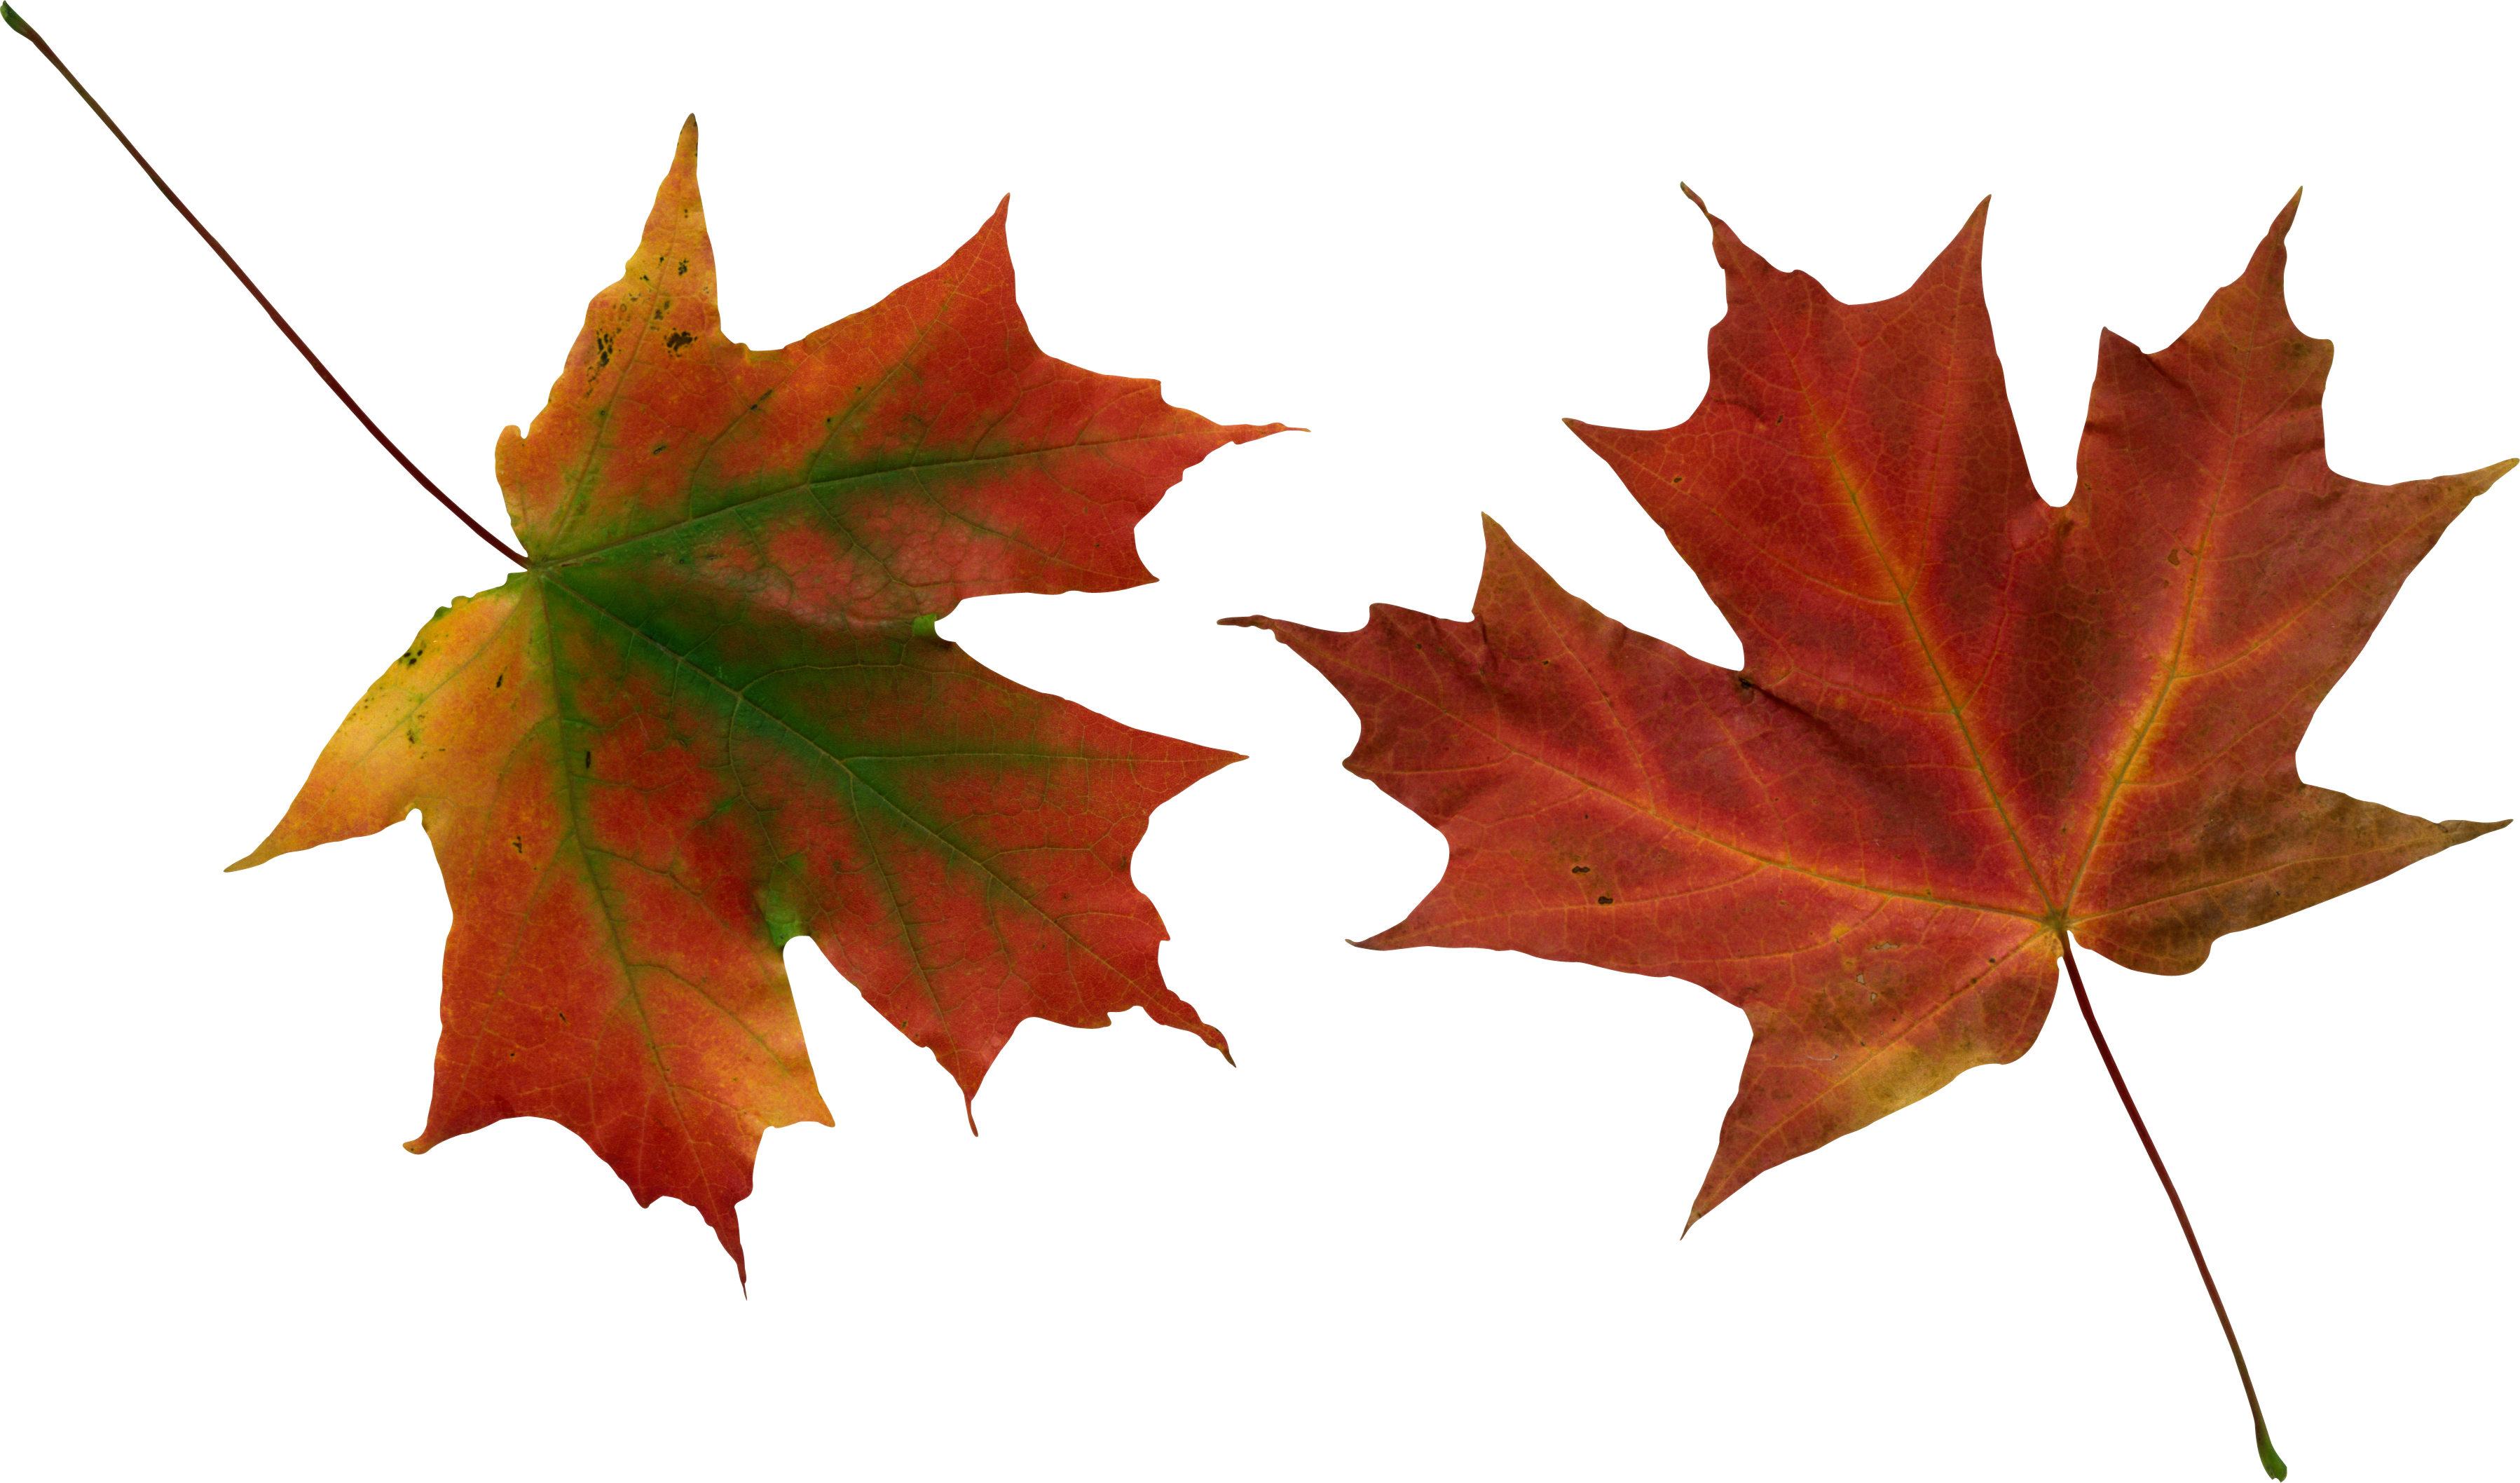 Autumn Leaves PNG Image | Autumn leaves, Leaves vector, Leaves